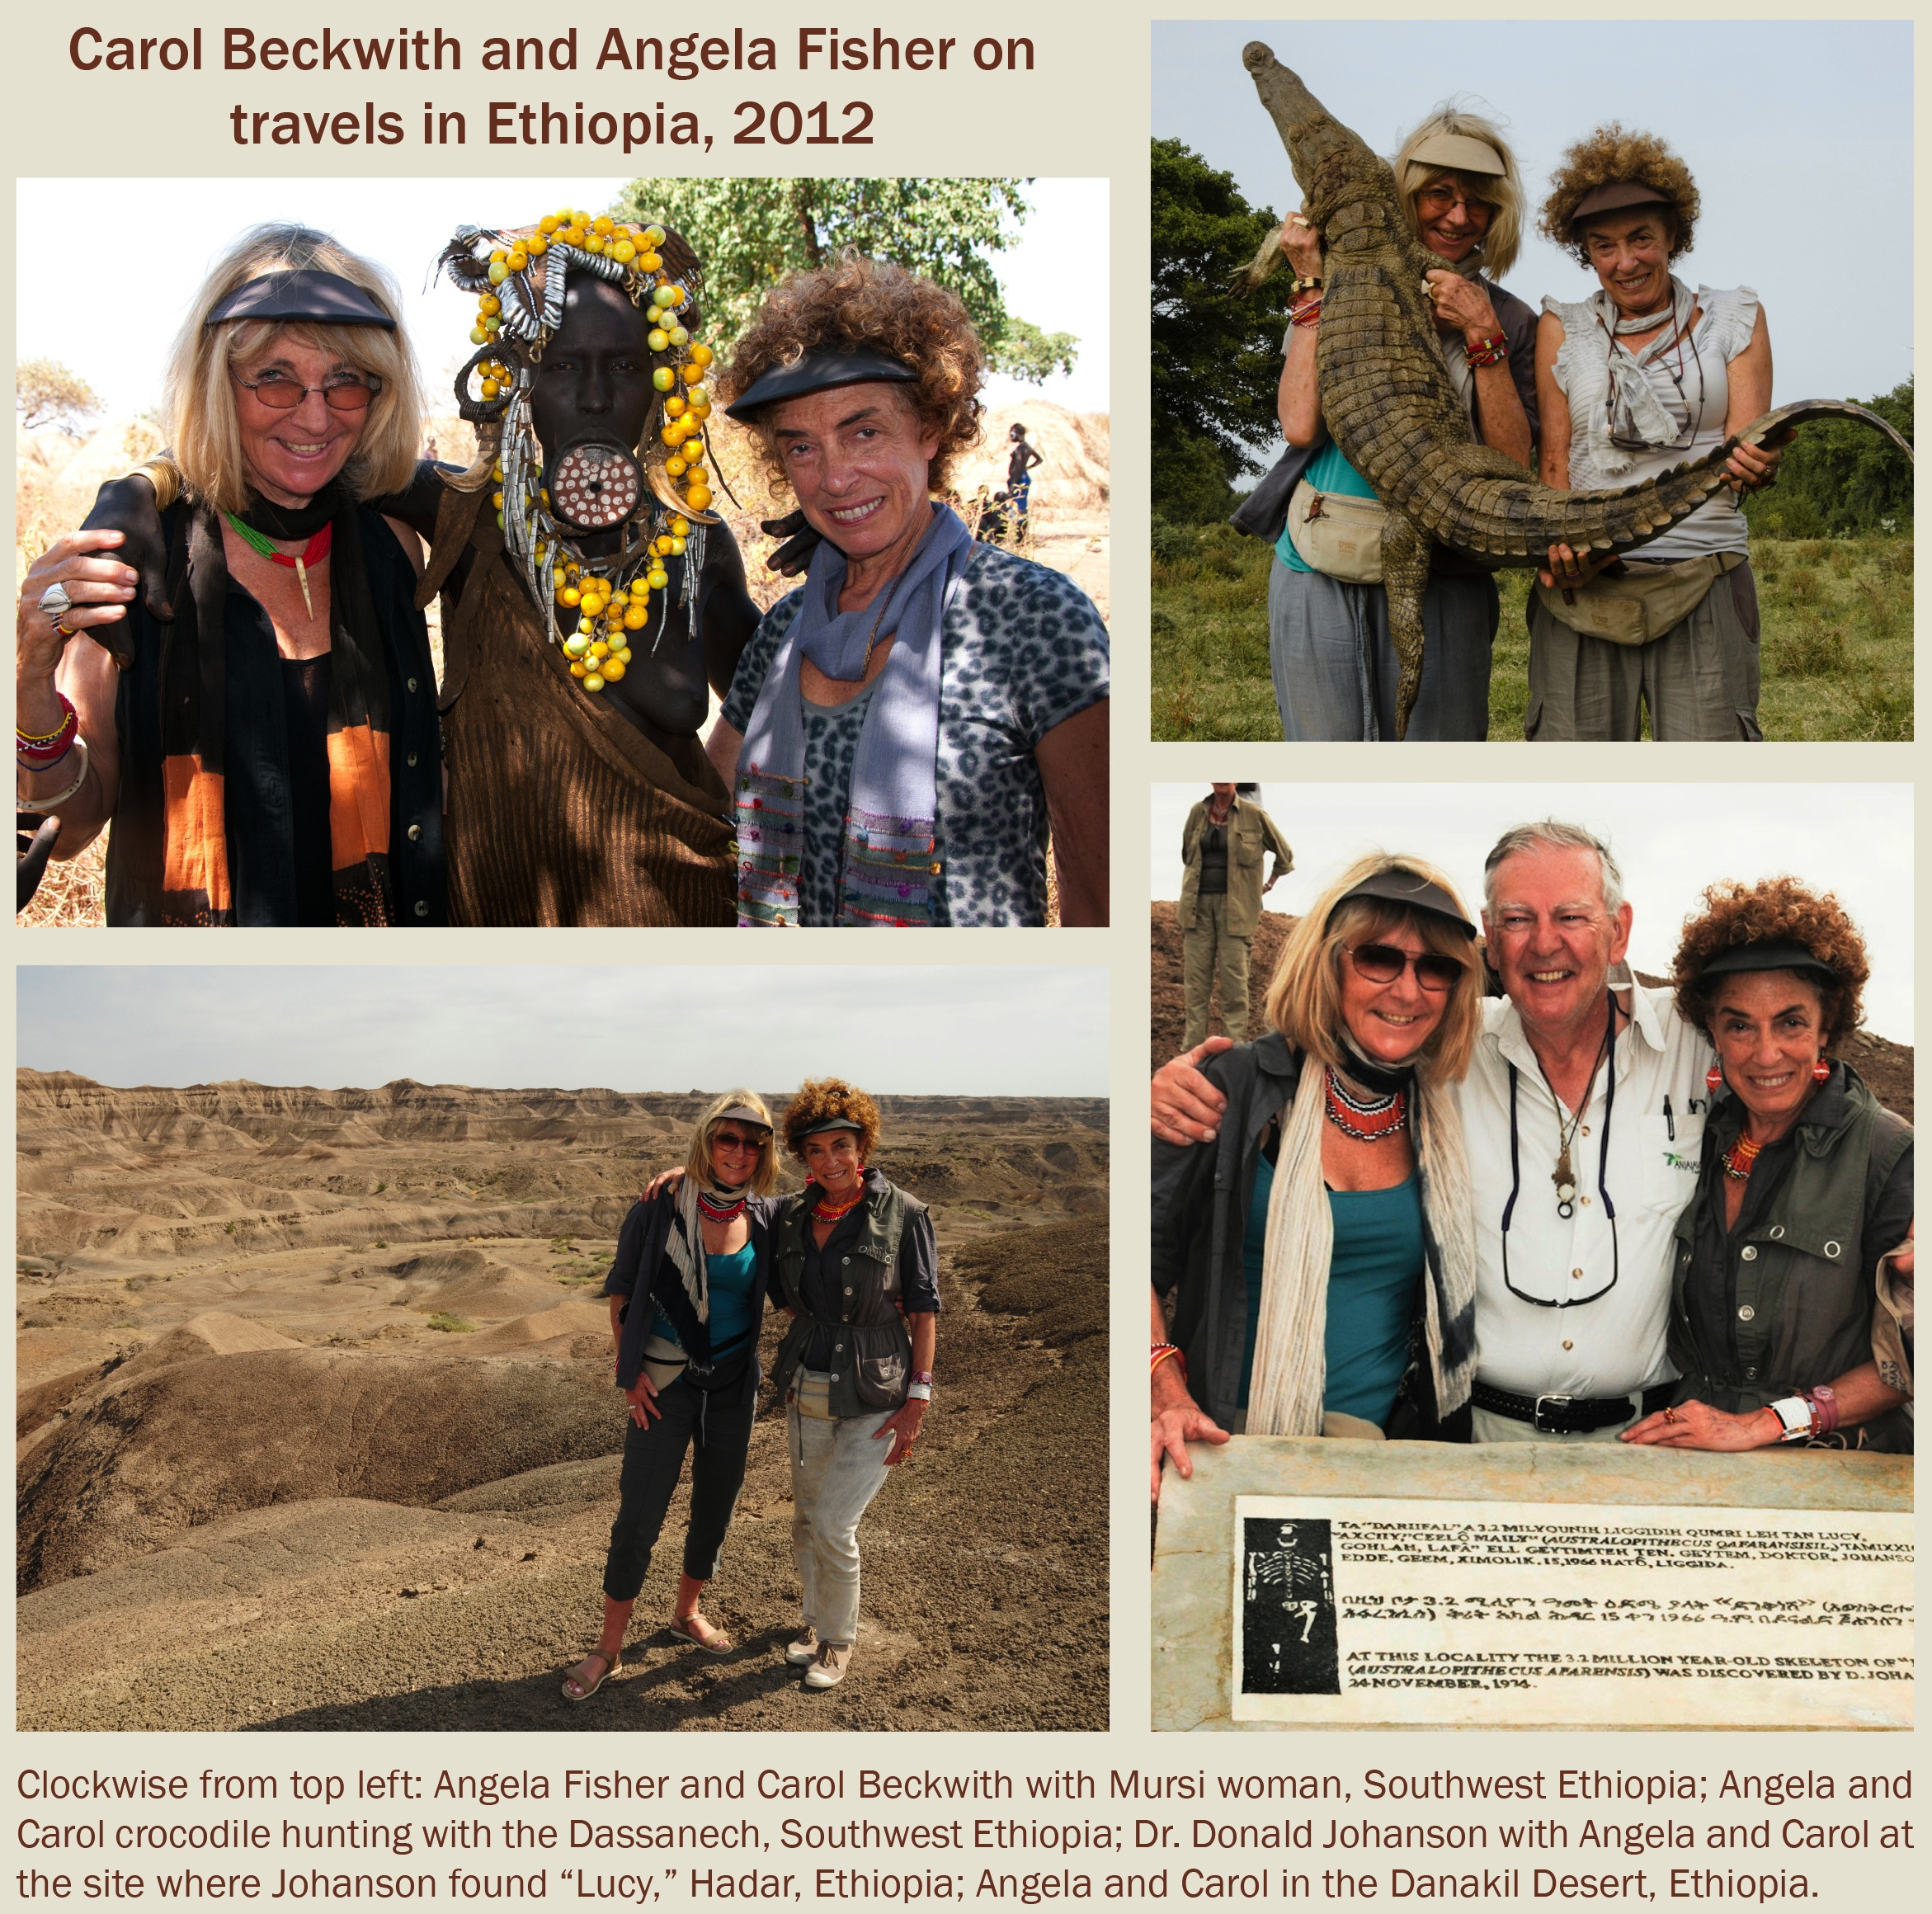 Carol Beckwith and Angela Fisher travels in Ethiopia 2012